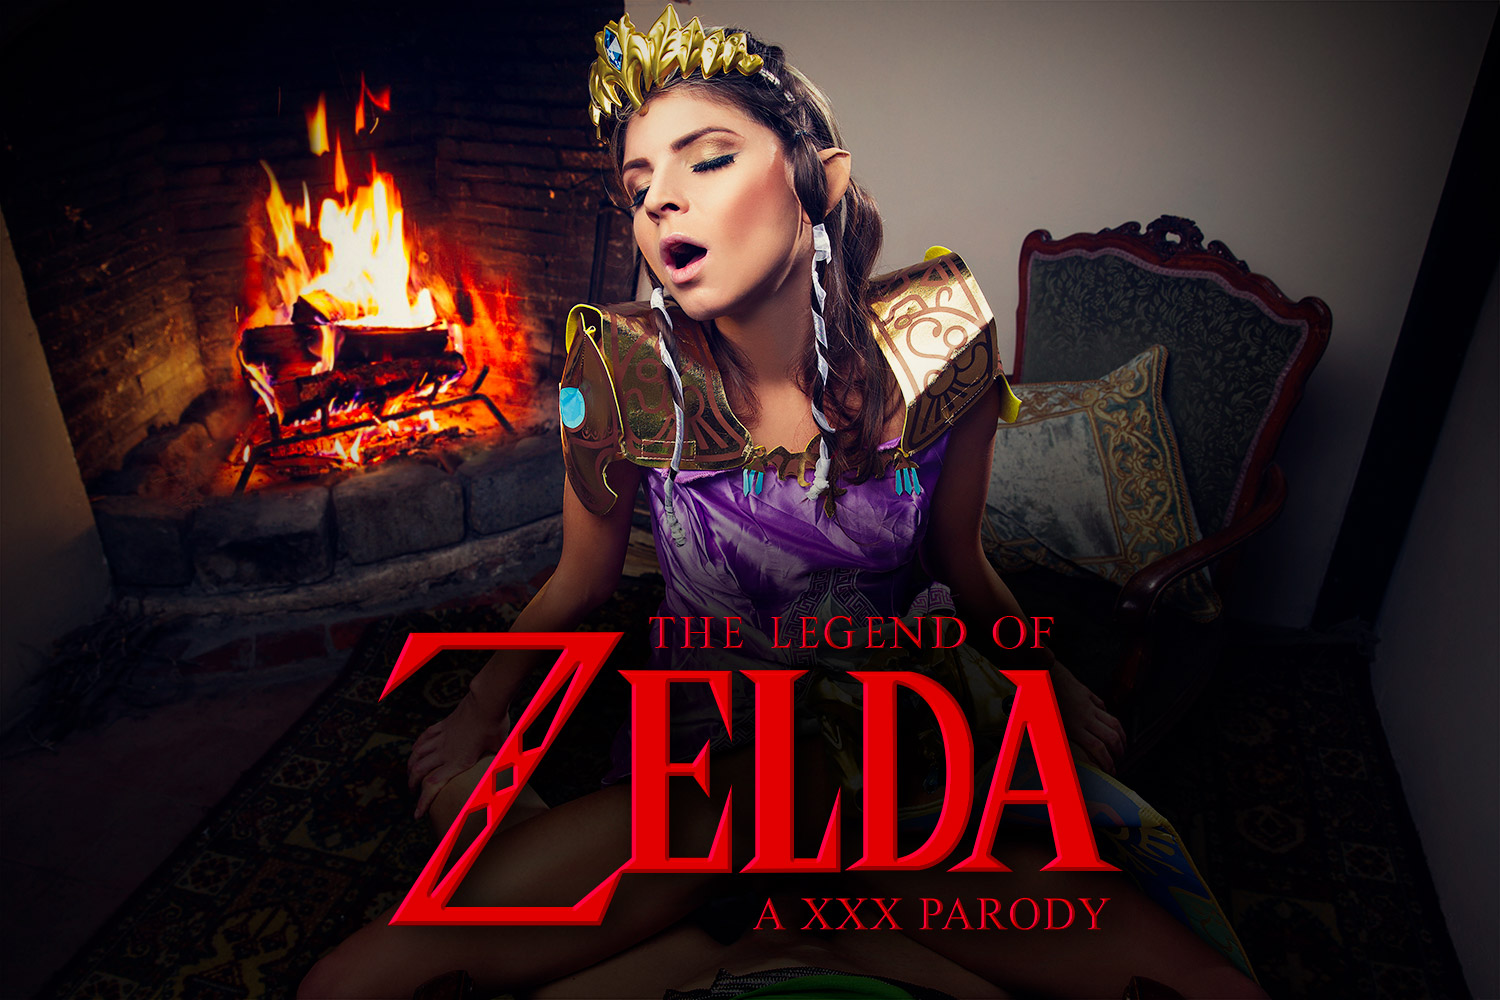 The Legend of Zelda VR Porn Cosplay with Gina Gerson | MobileVRXXX